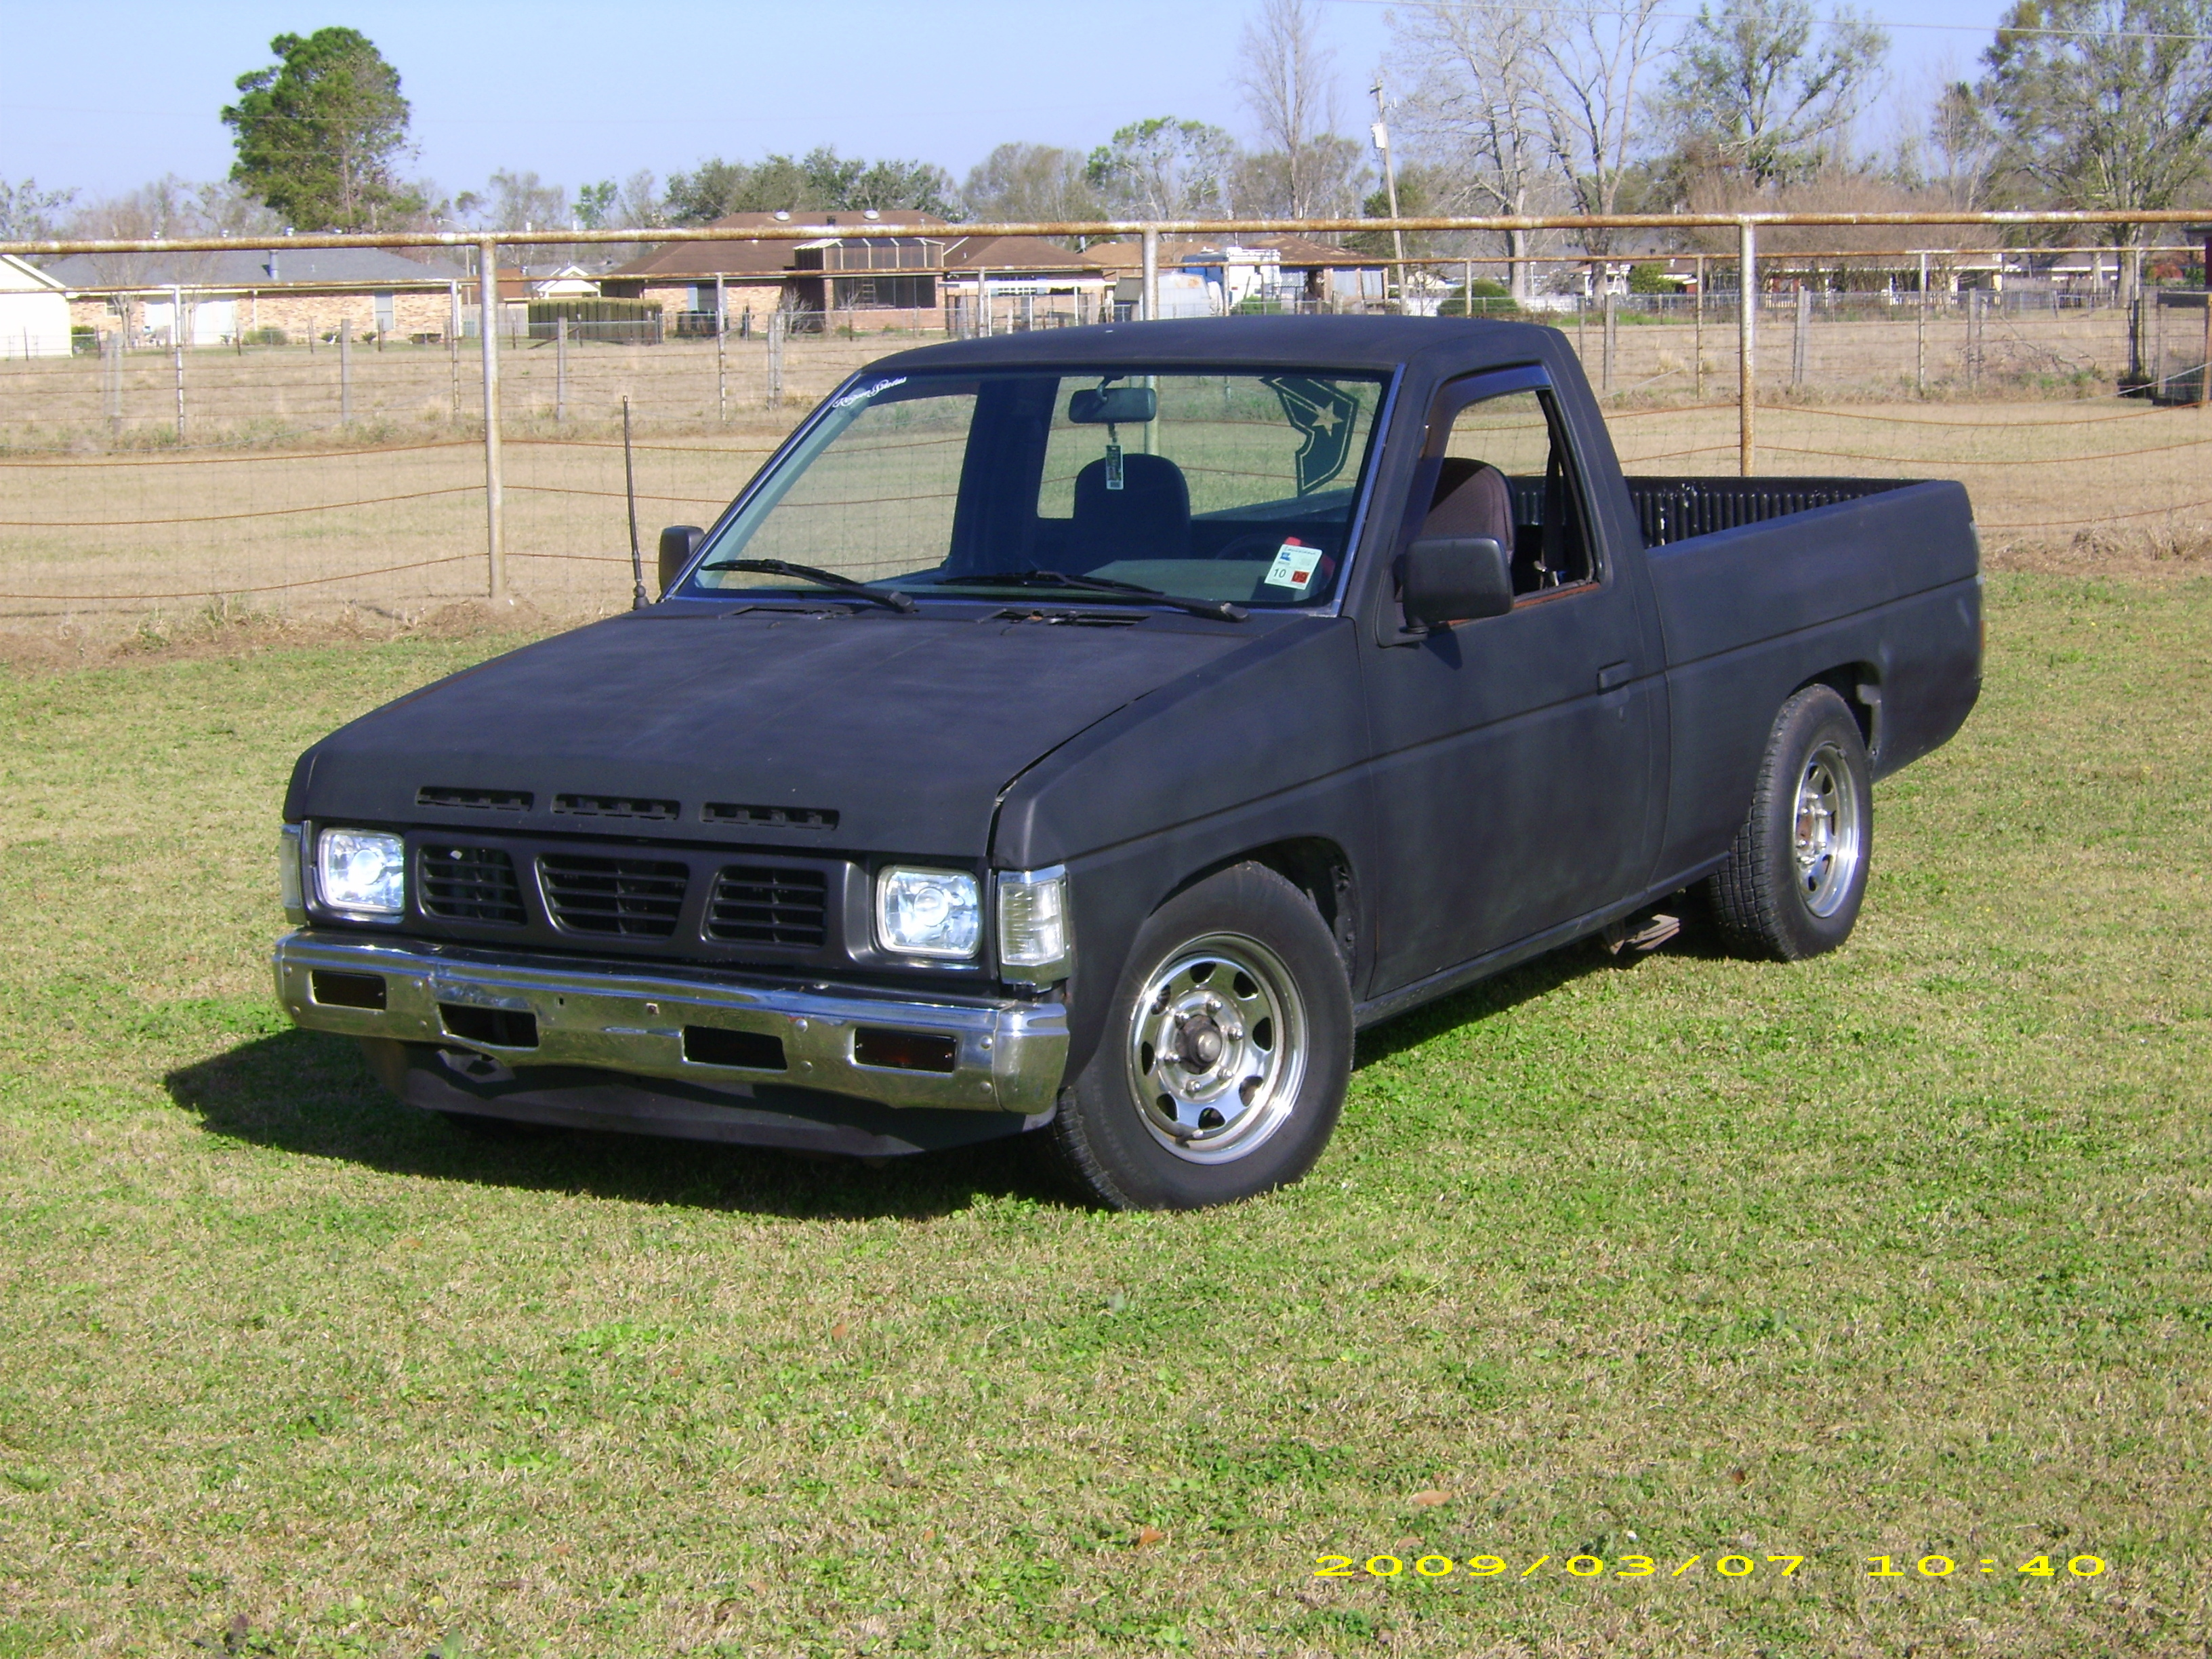 tylerg61 1991 Nissan Regular Cab Specs, Photos, Modification Info at